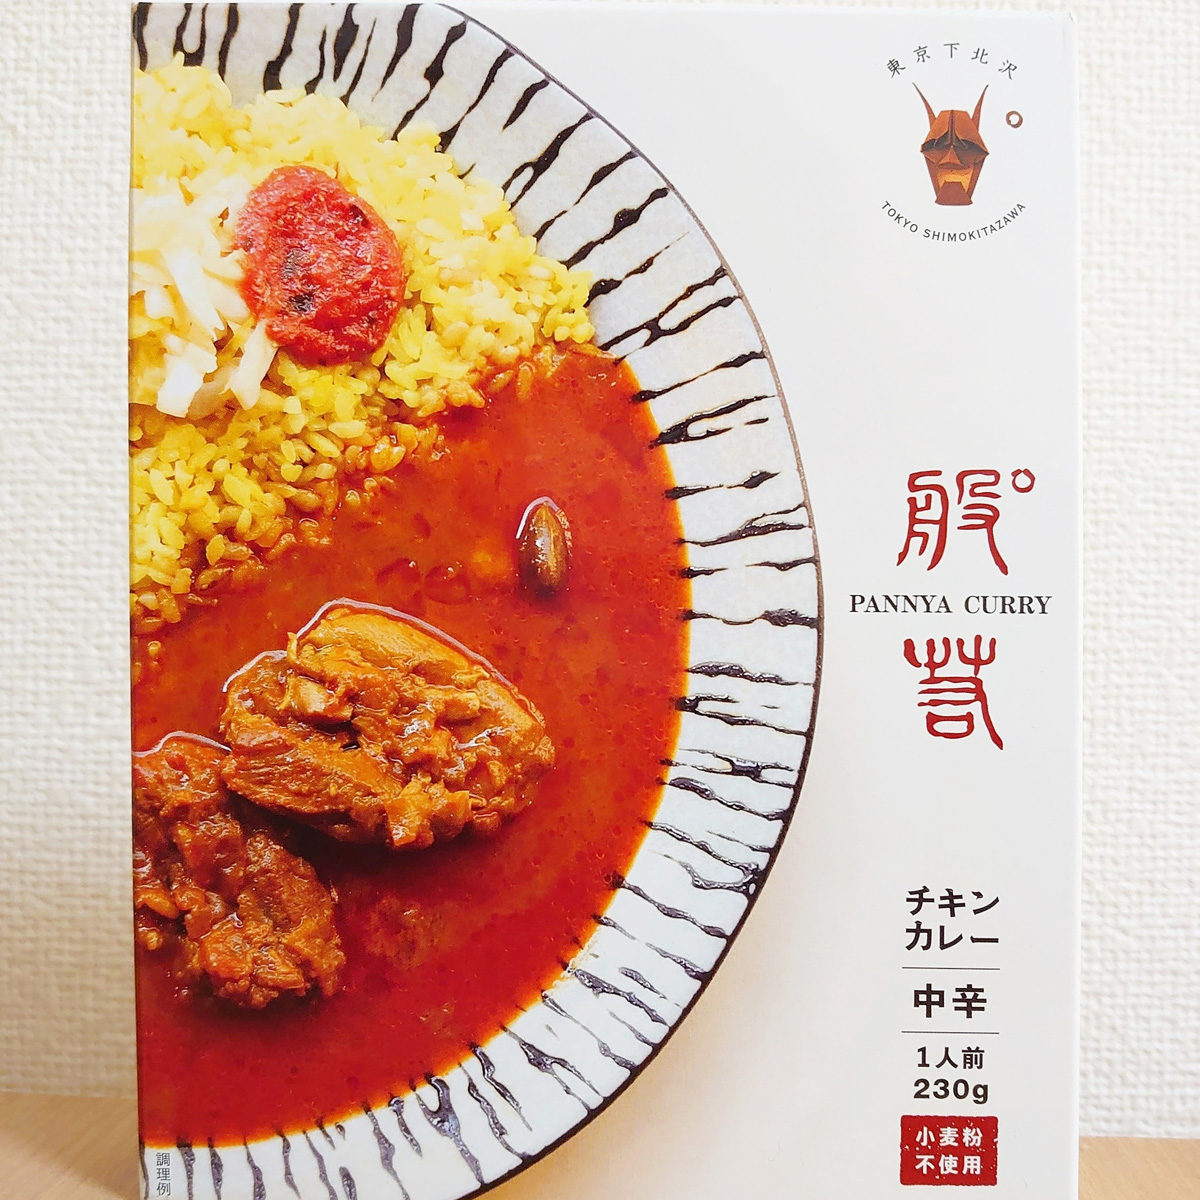 36 chambers of spice 般゜若 チキンカレー